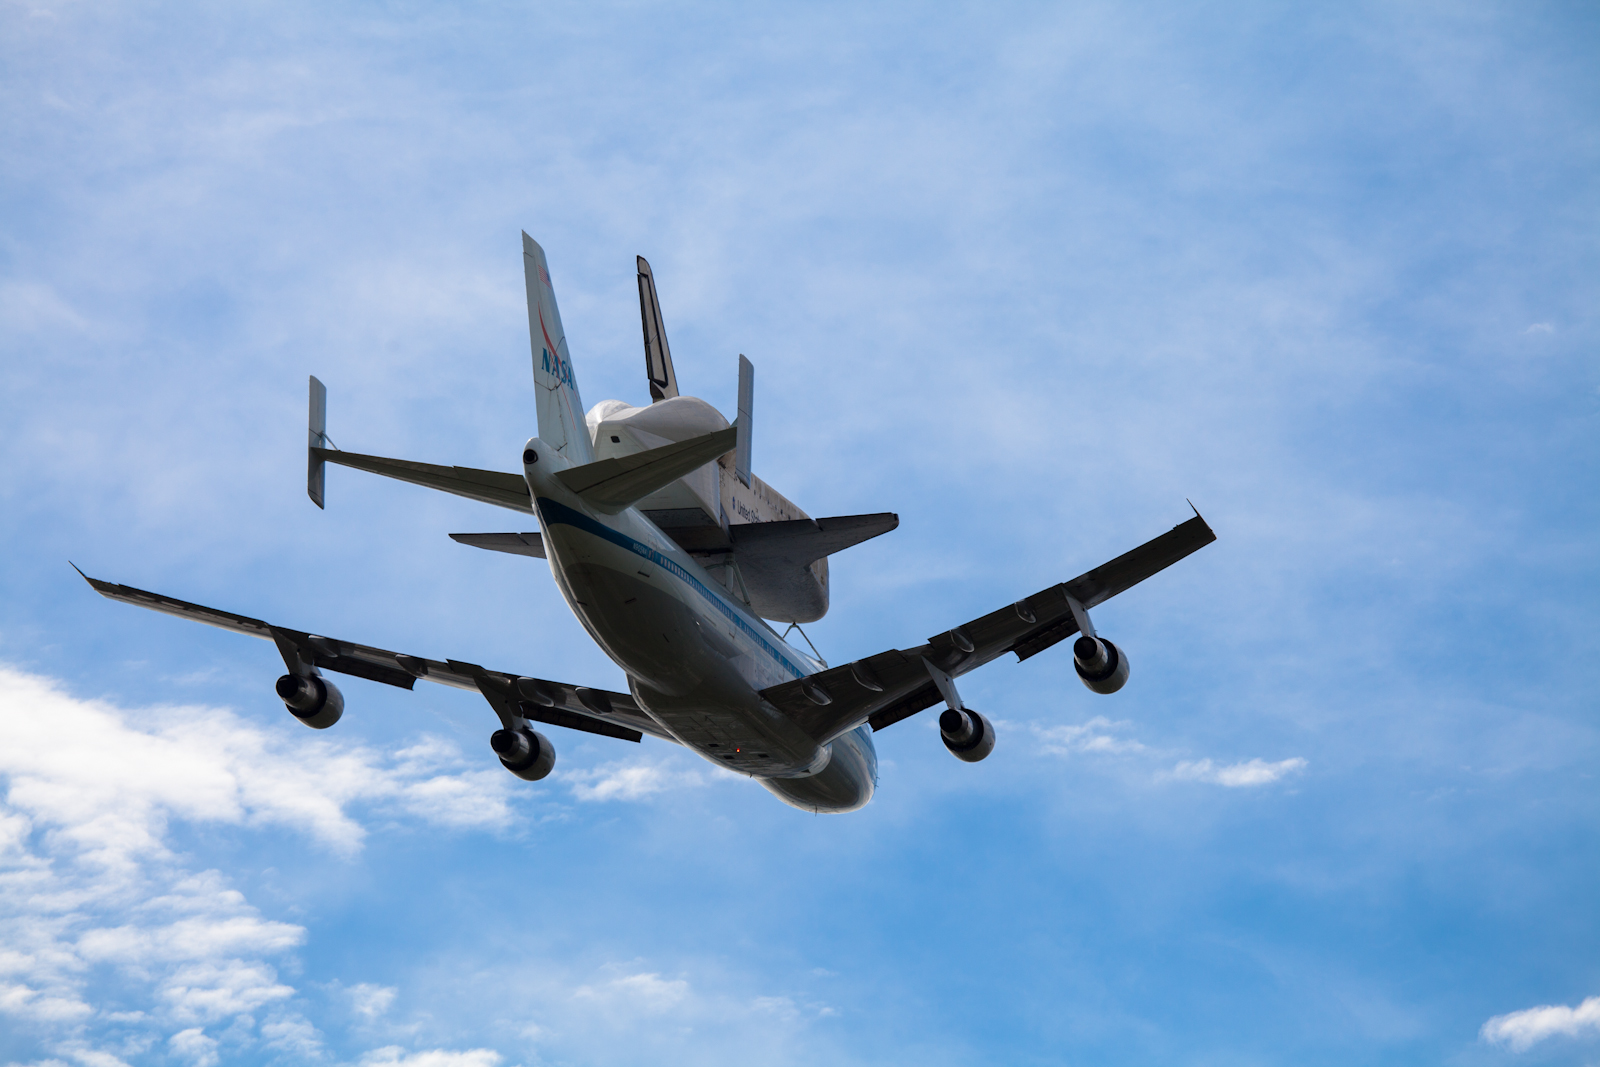 space shuttle discovery 1984 - photo #31